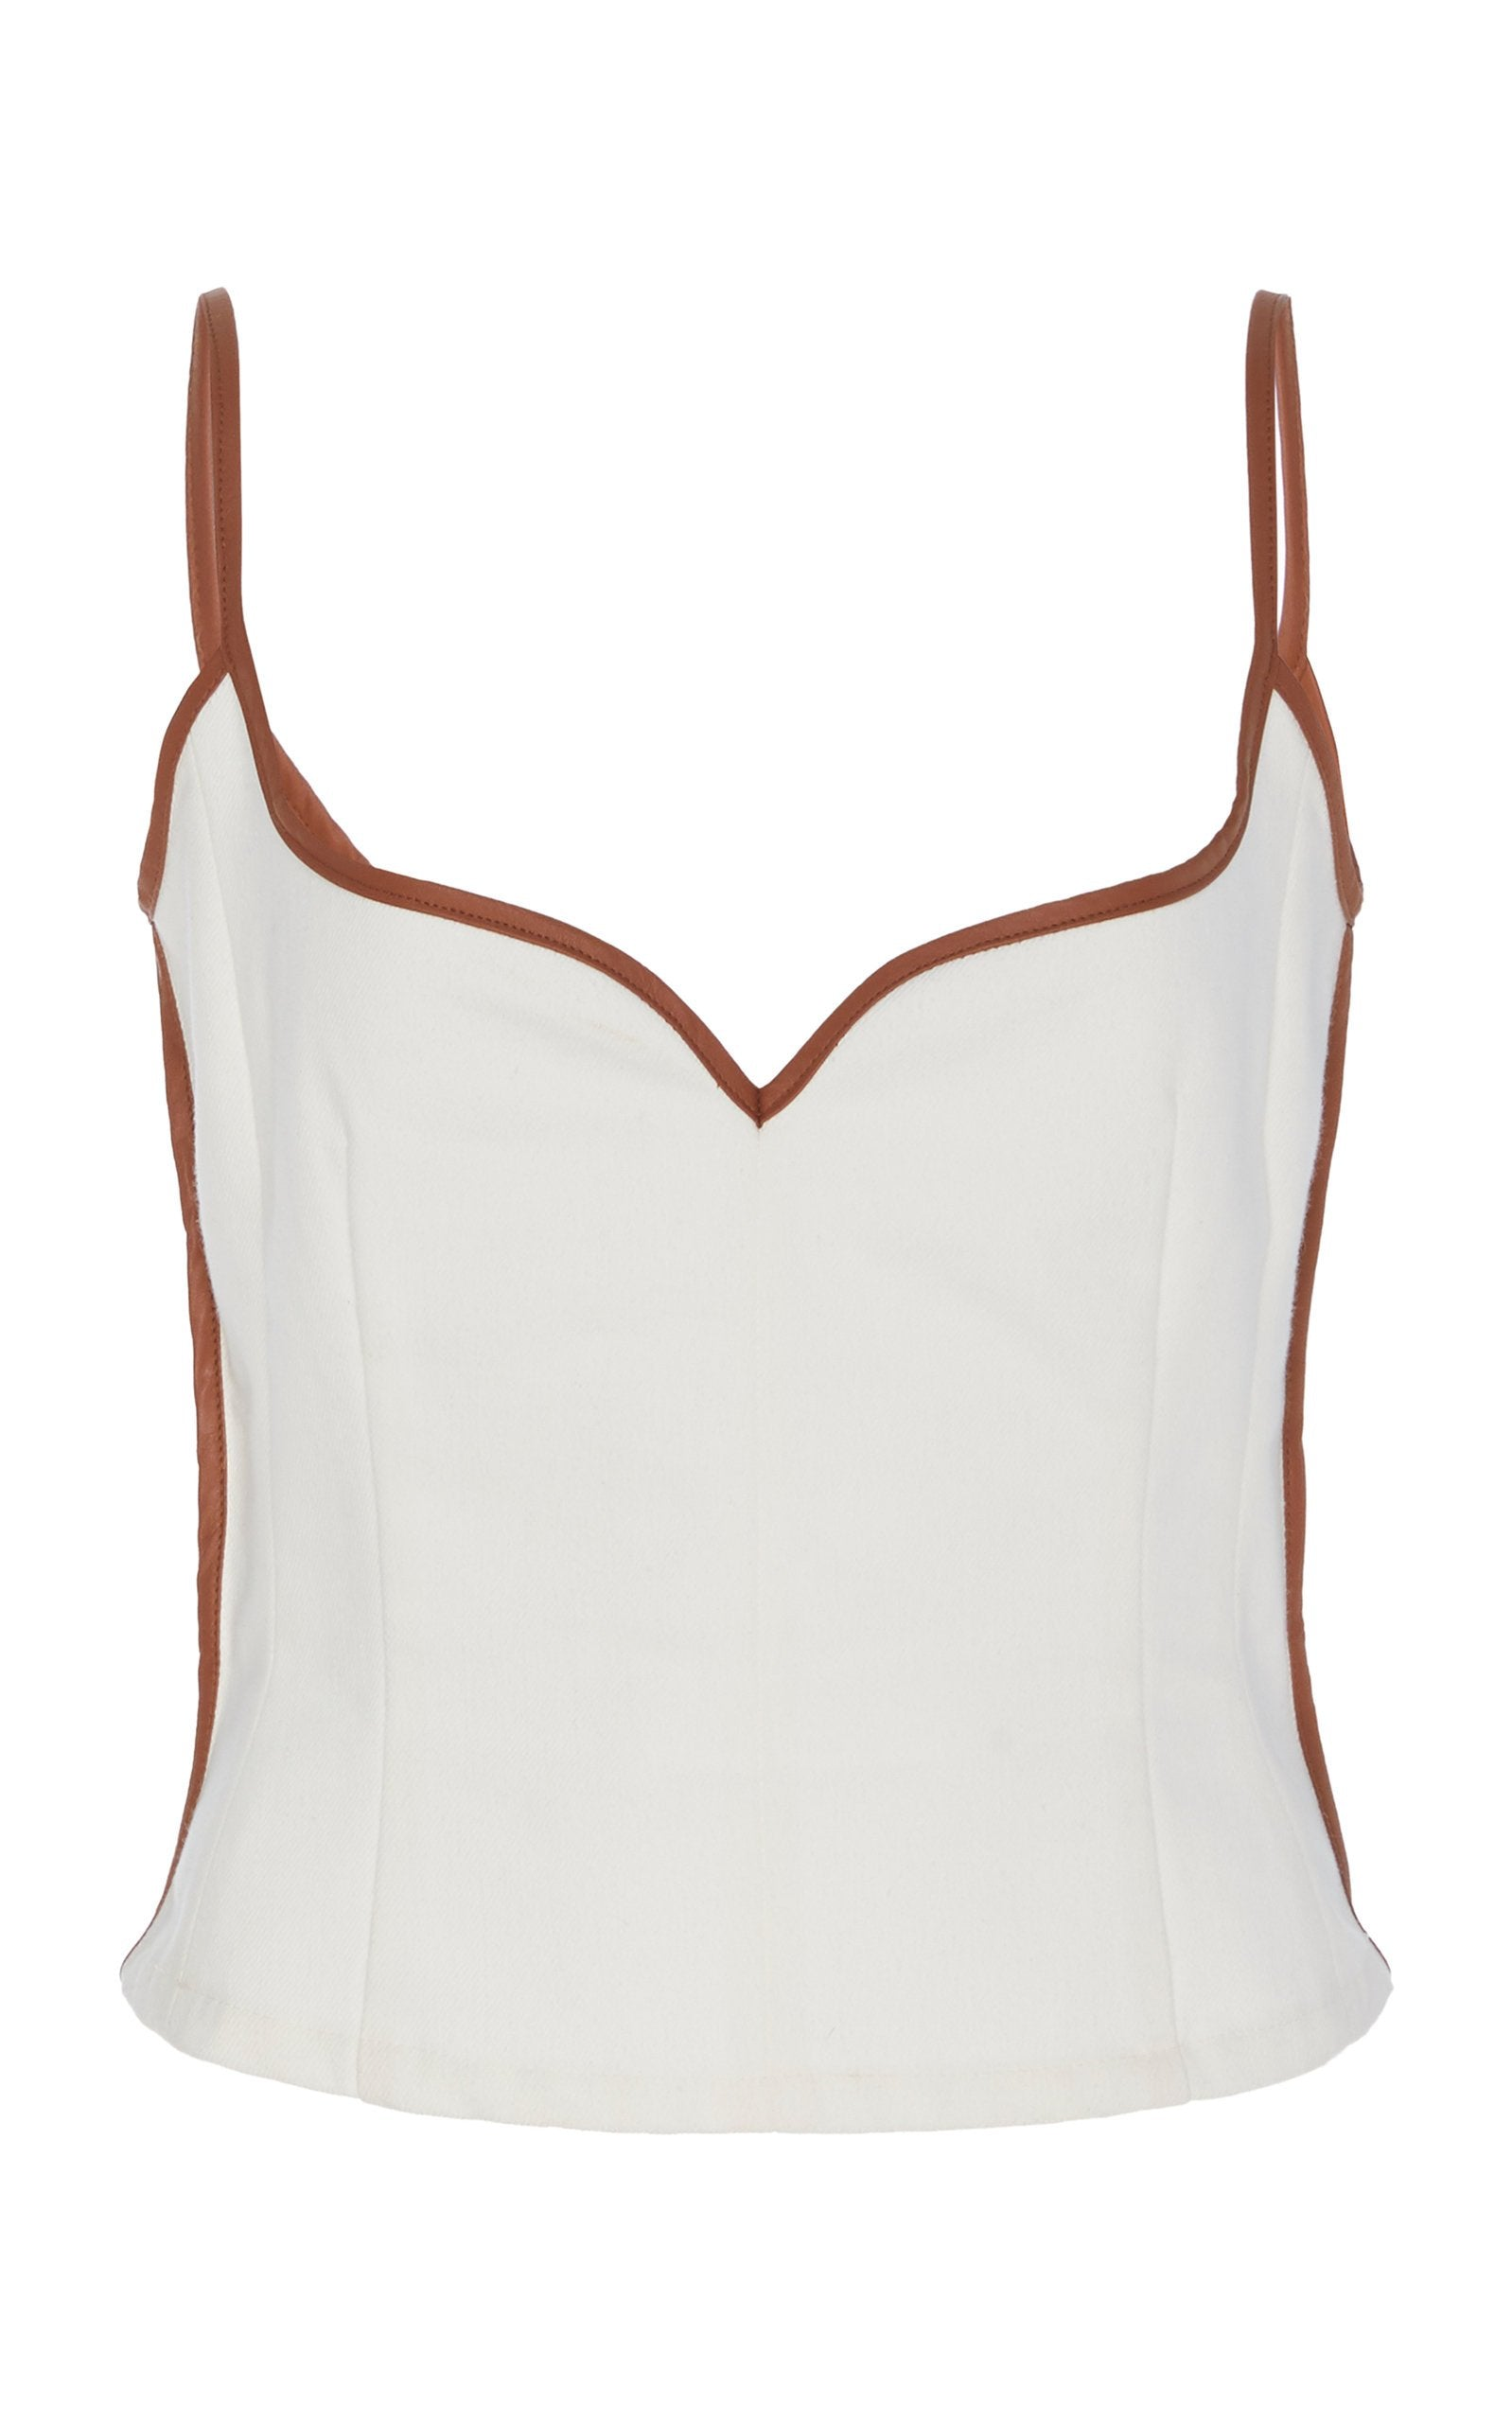 Heart Singlet | White and Tan